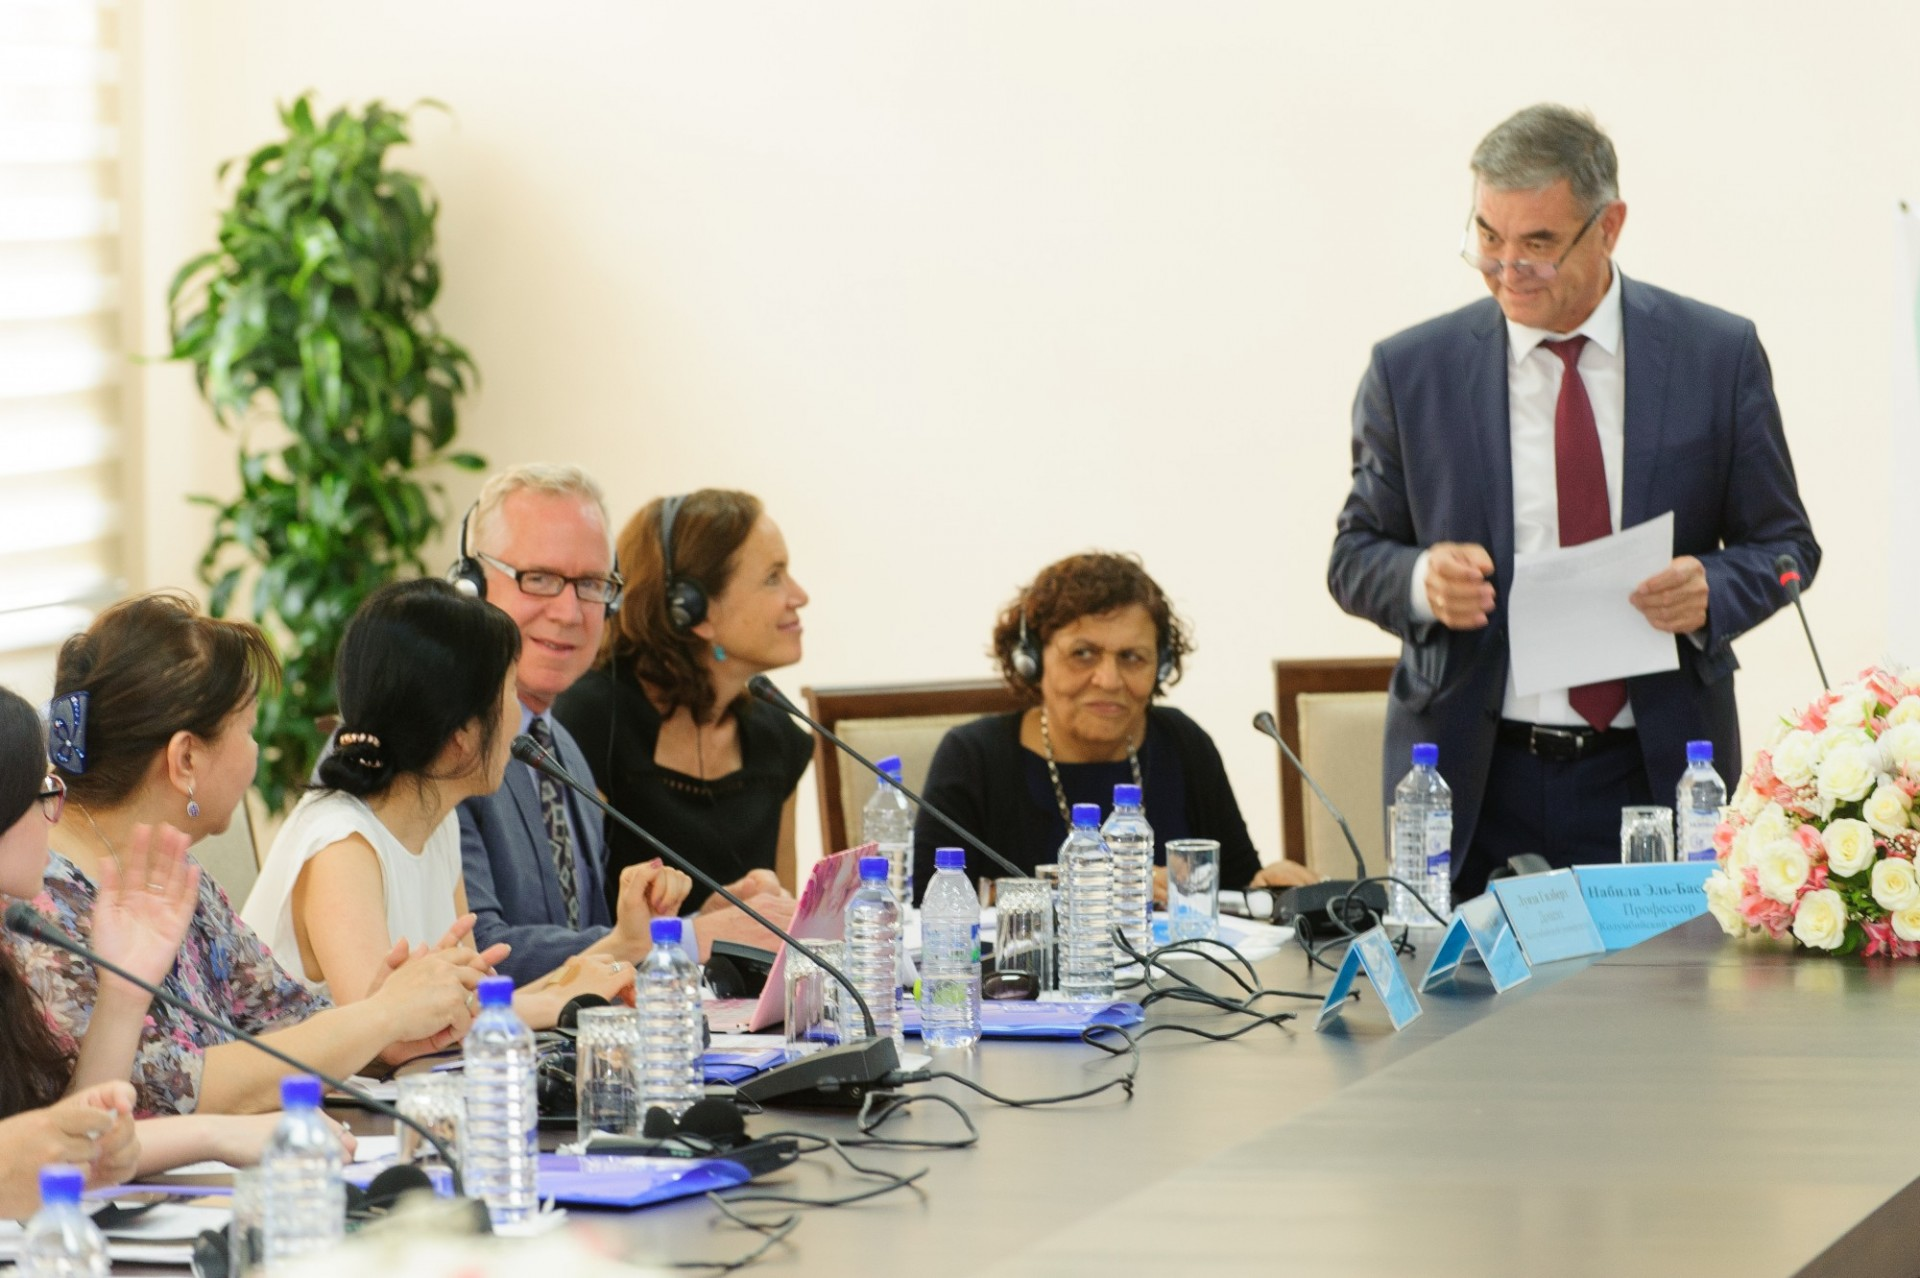 Project launch meeting June 2018 at the National University of Uzbekistan, Tashkent, Uzbekistan with presentations by: Dr. Avazjon Marakhimov, Chancellor of the National University of Uzbekistan; Ms. Tanzila Narbaeva, Deputy Prime-Minister, Chairperson of the Women's Committee of Uzbekistan; Mr. Sascha Graumann, UNICEF Representative in Uzbekistan; Drs. Nabila El-Bassel, Louisa Gilbert and Timothy Hunt, and Ms. Lyudmila Kim of SIG/CSSW